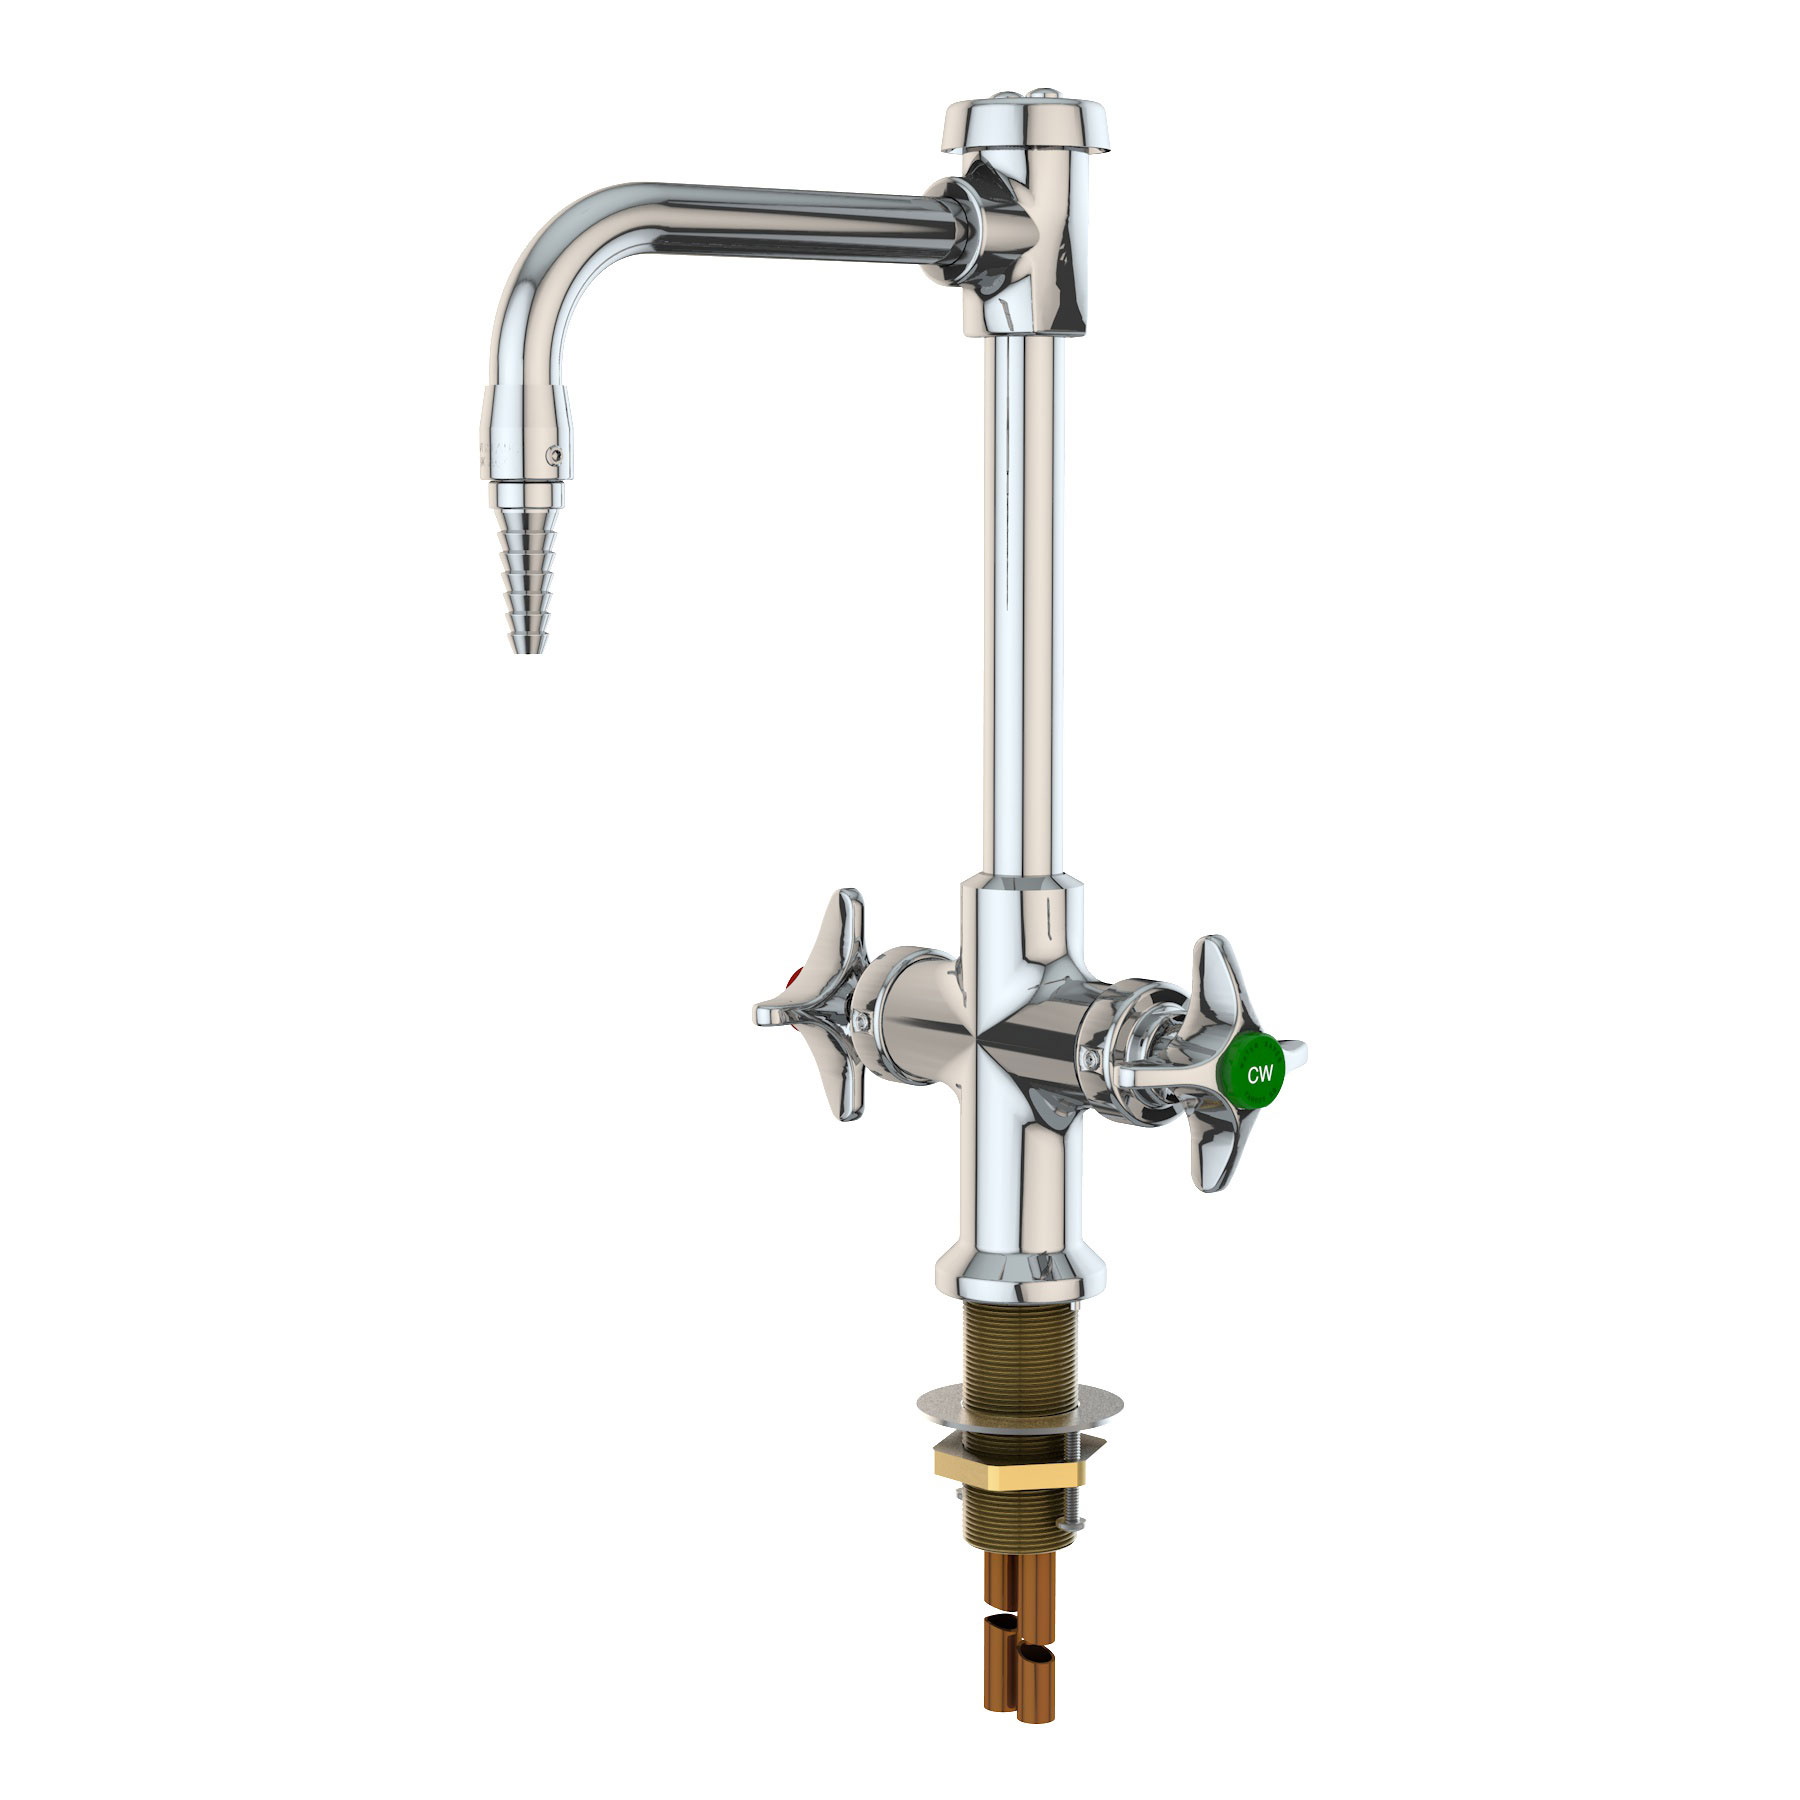 VR411VB – WaterSaver Faucet Co.